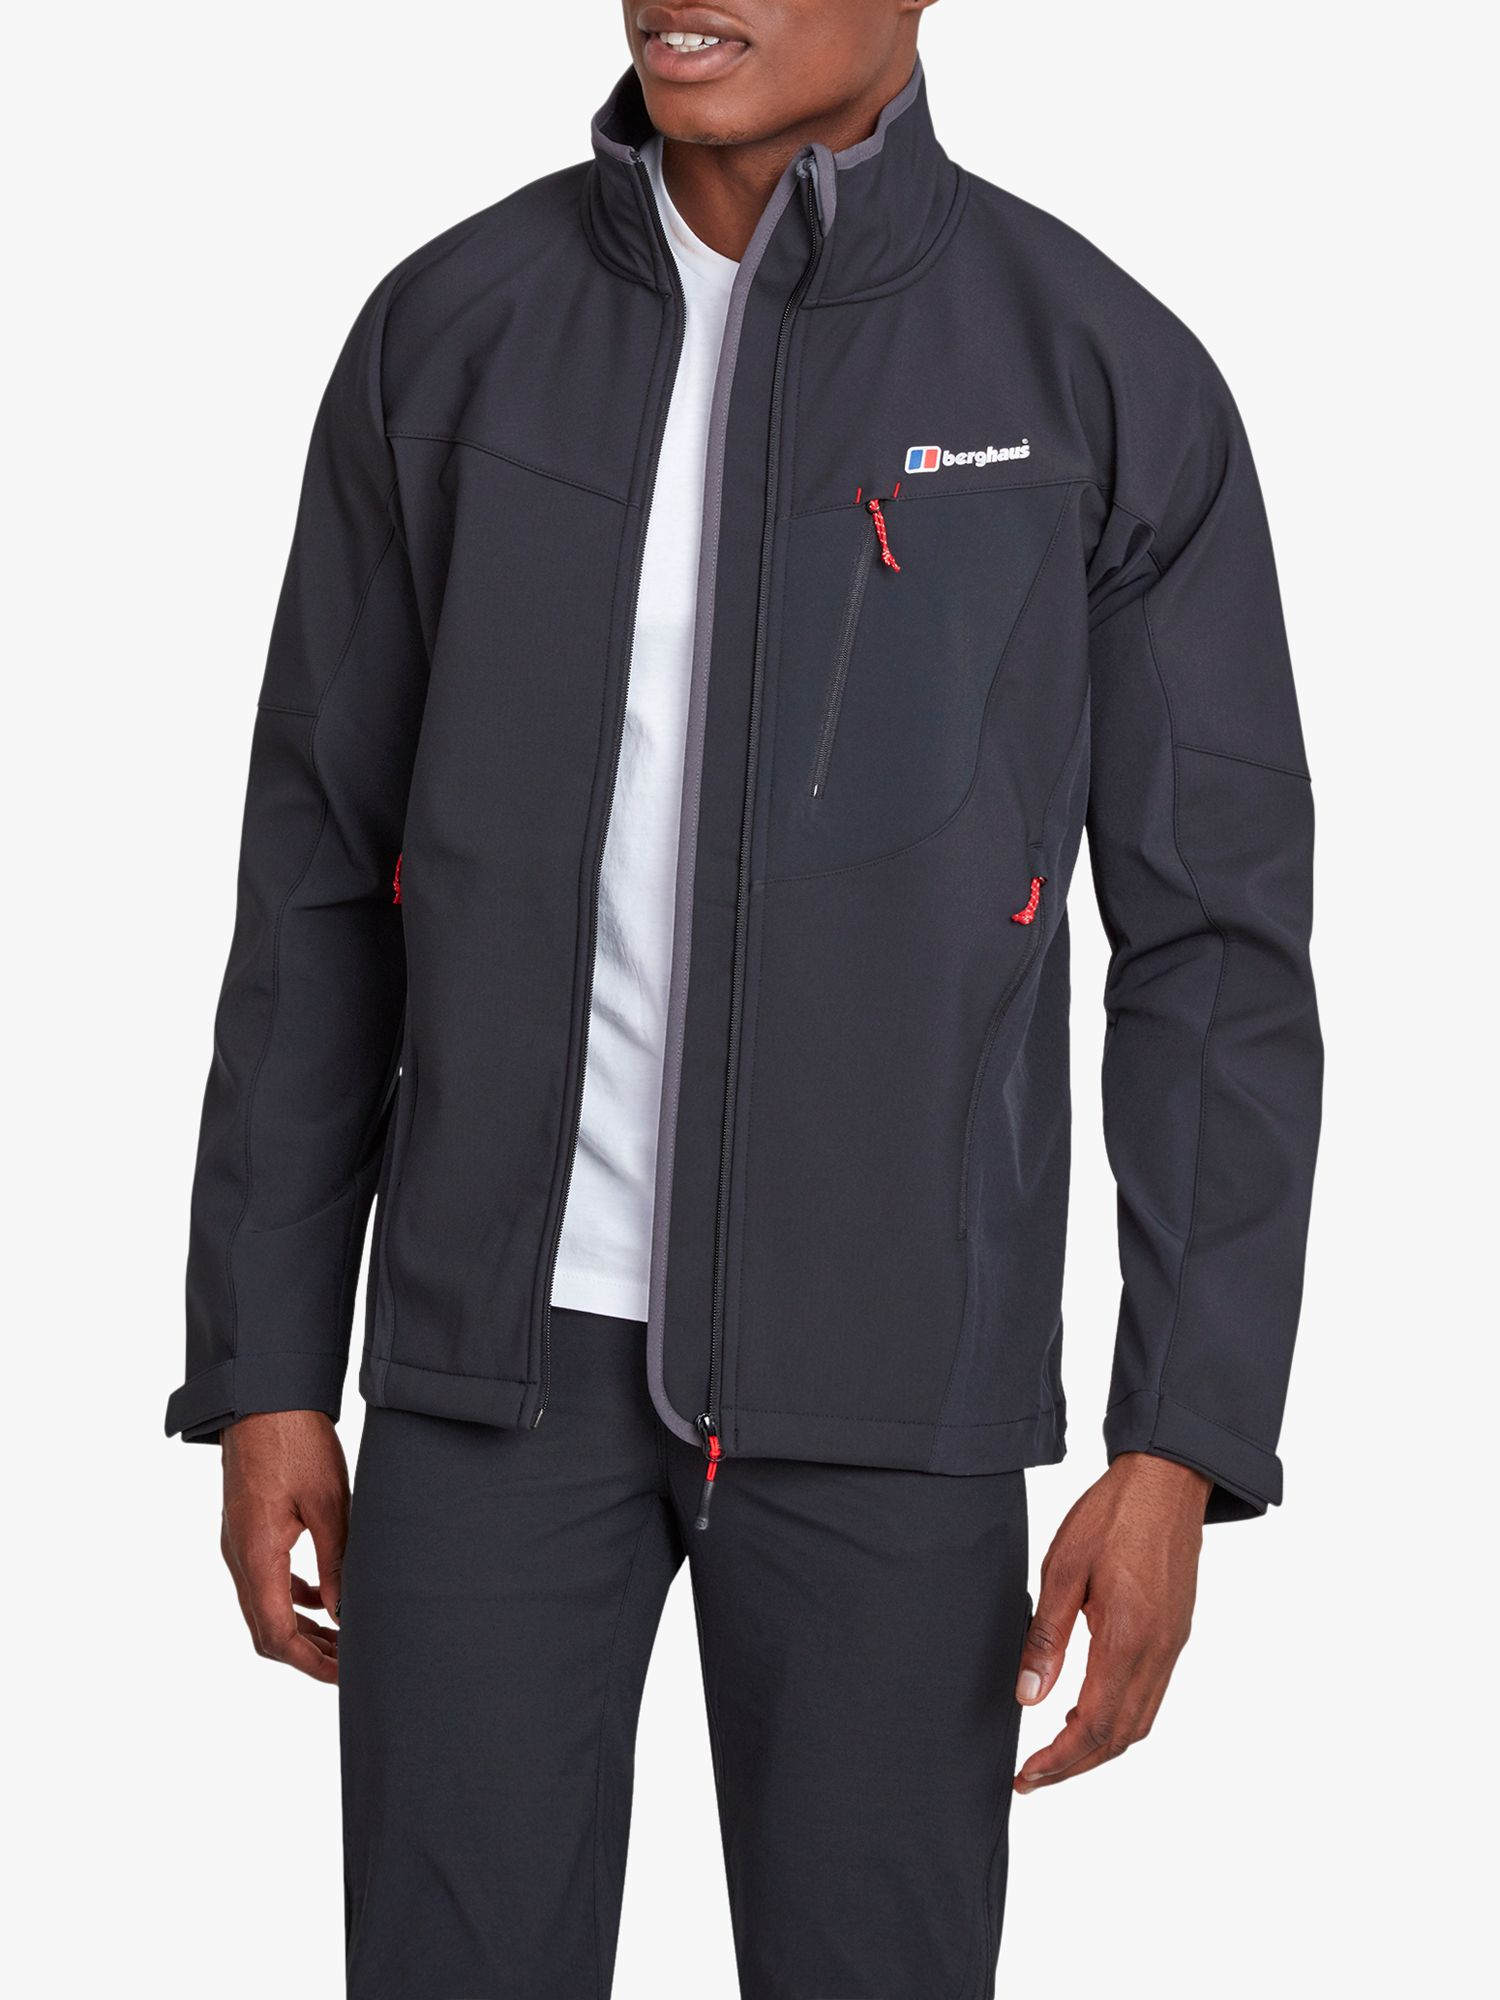 Berghaus Berghaus Ghlas Men's Softshell Jacket, Black